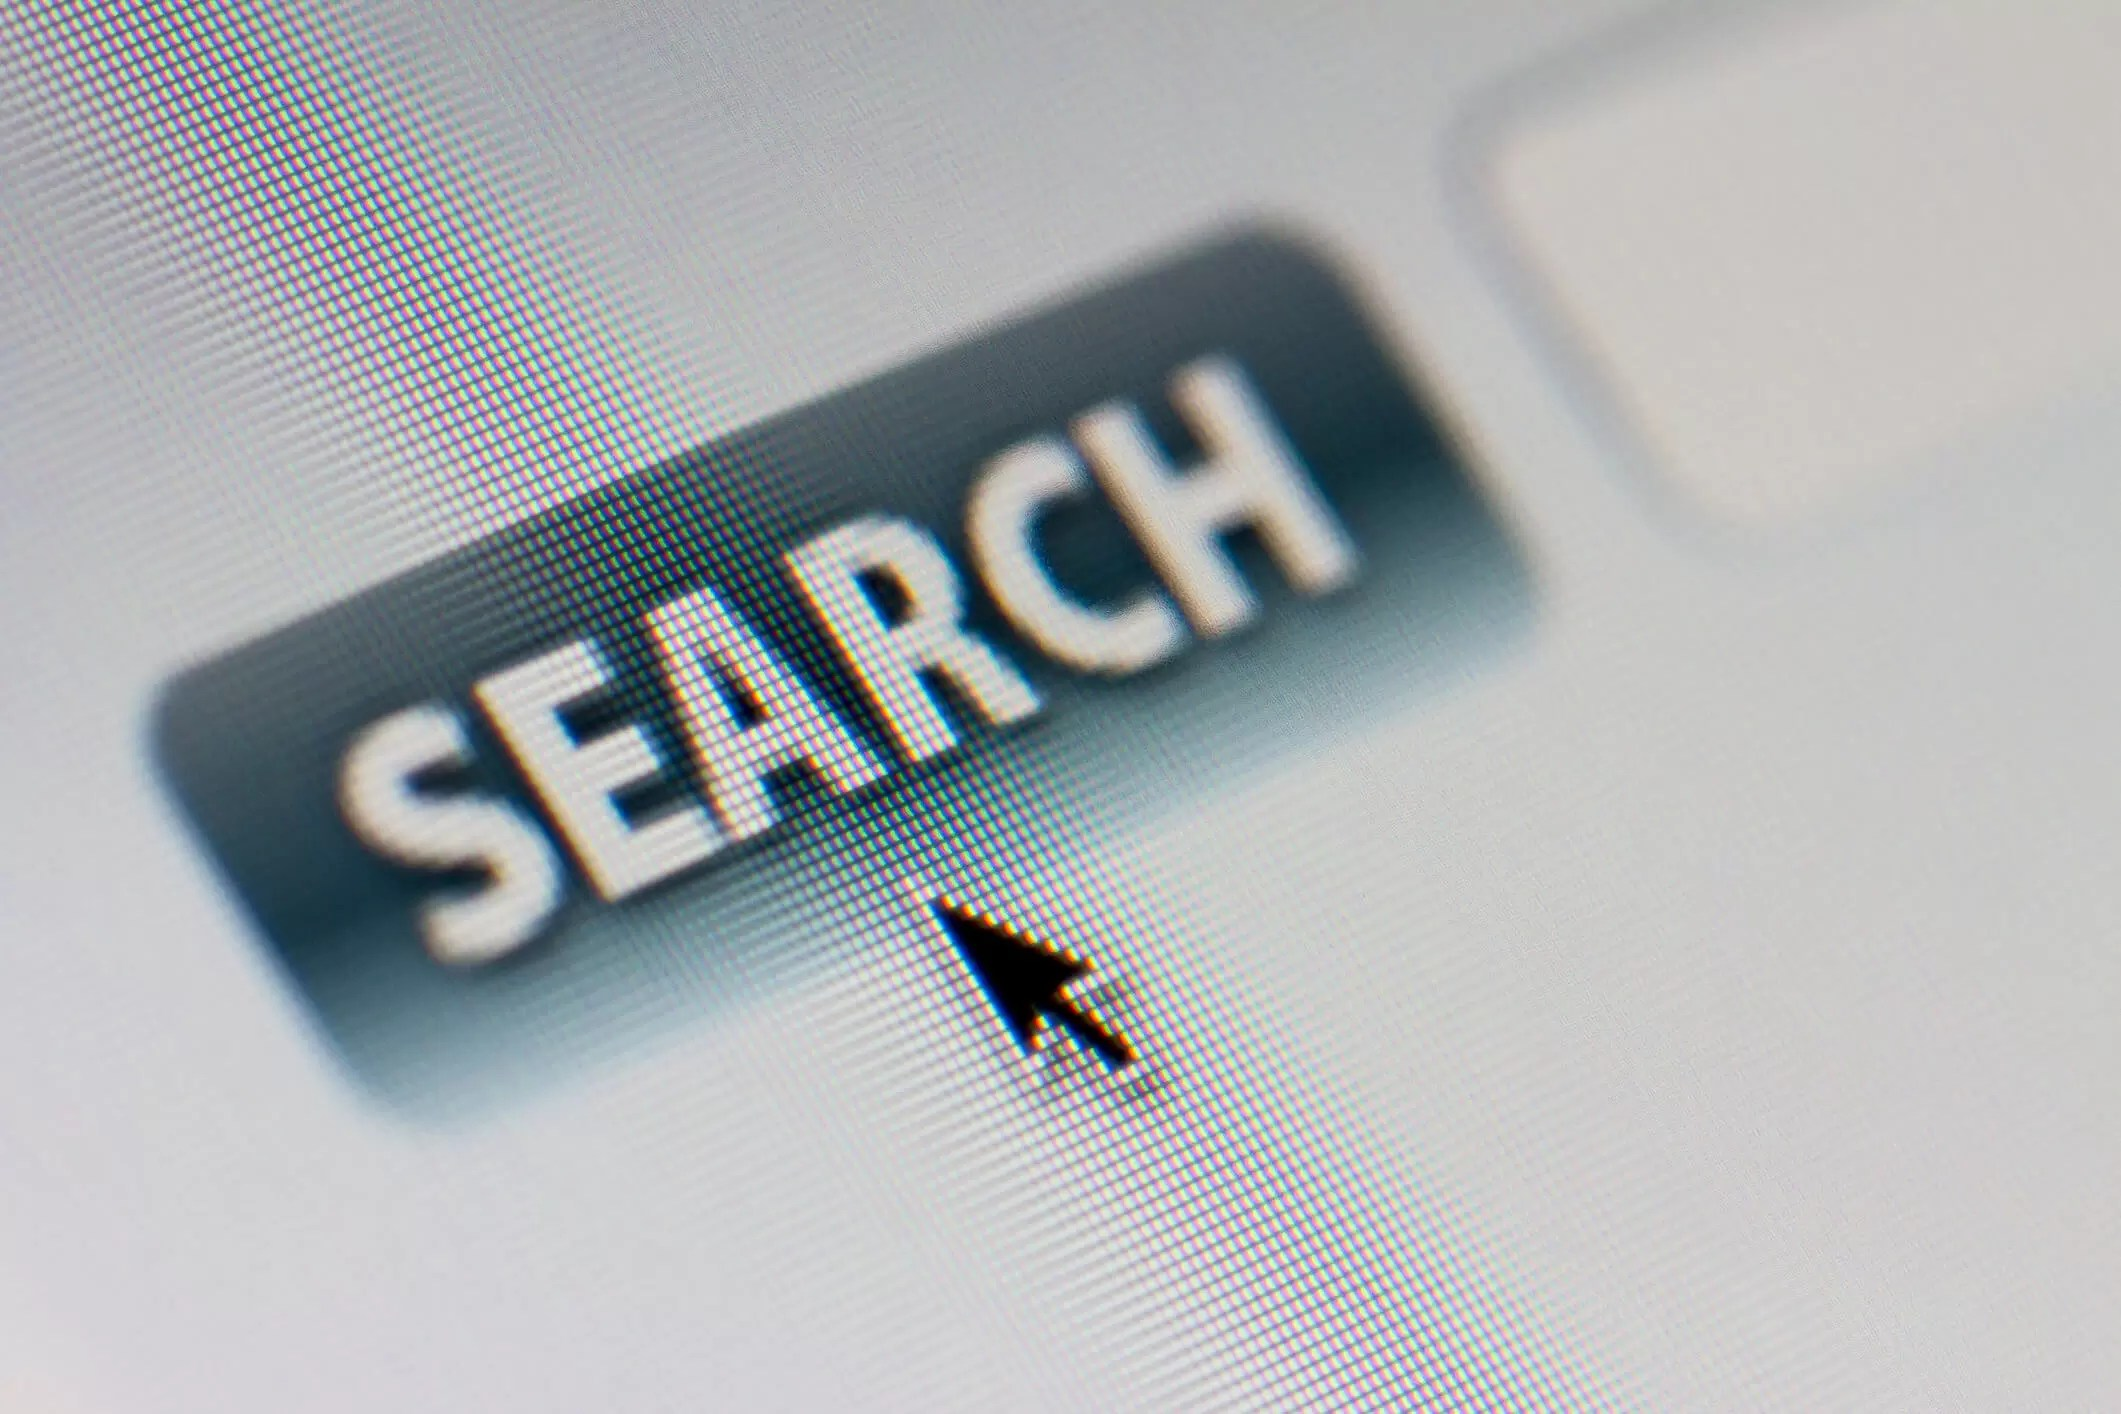 The word Search appears on a computer screen